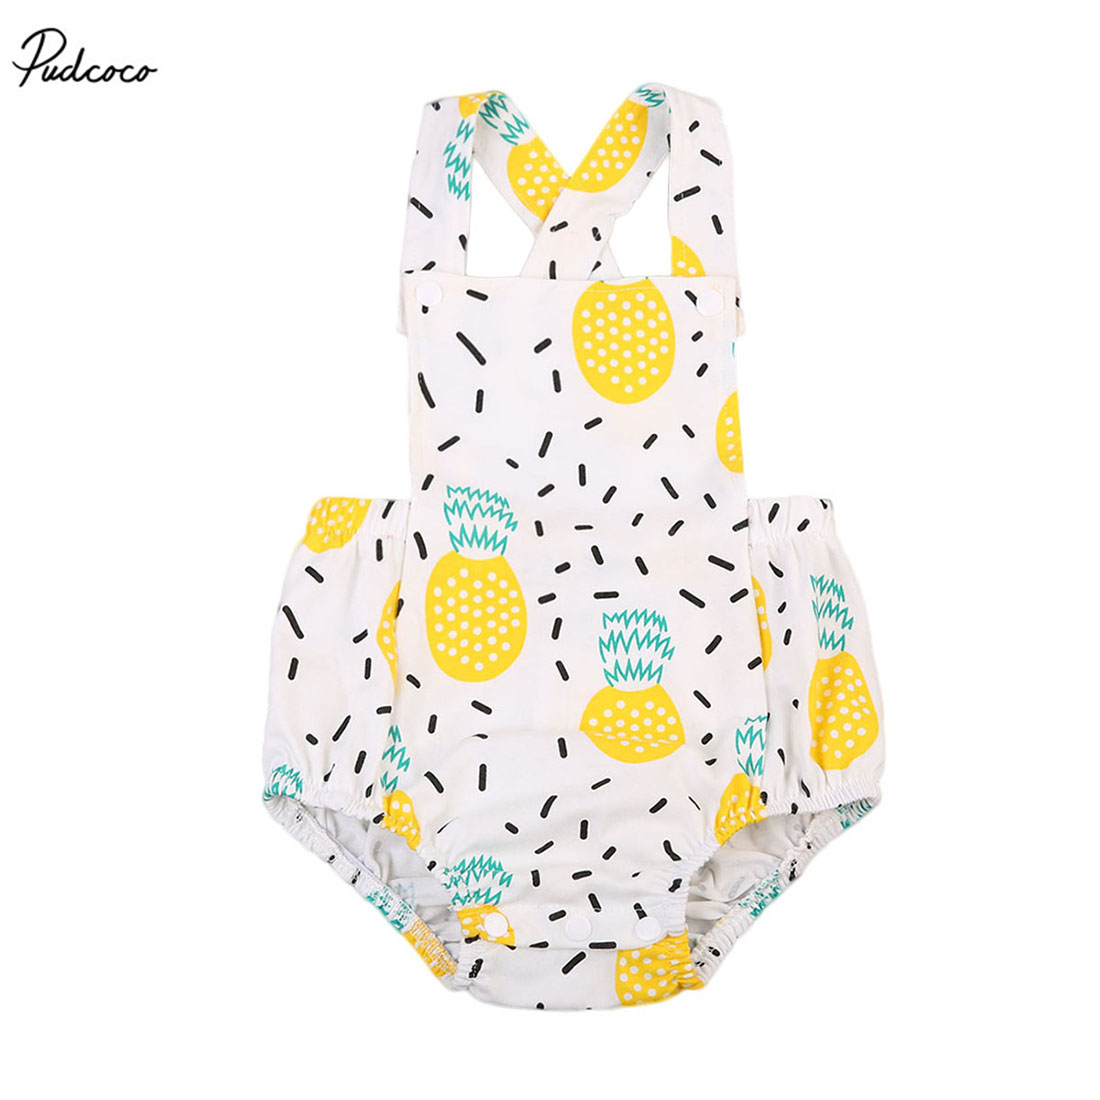 все цены на Cute Infant Baby Girl Clothes Pineapple Print Jumpsuit Sleeveless Backless Bandage Romper Polka Dot One Piece Outfit Sunsuit